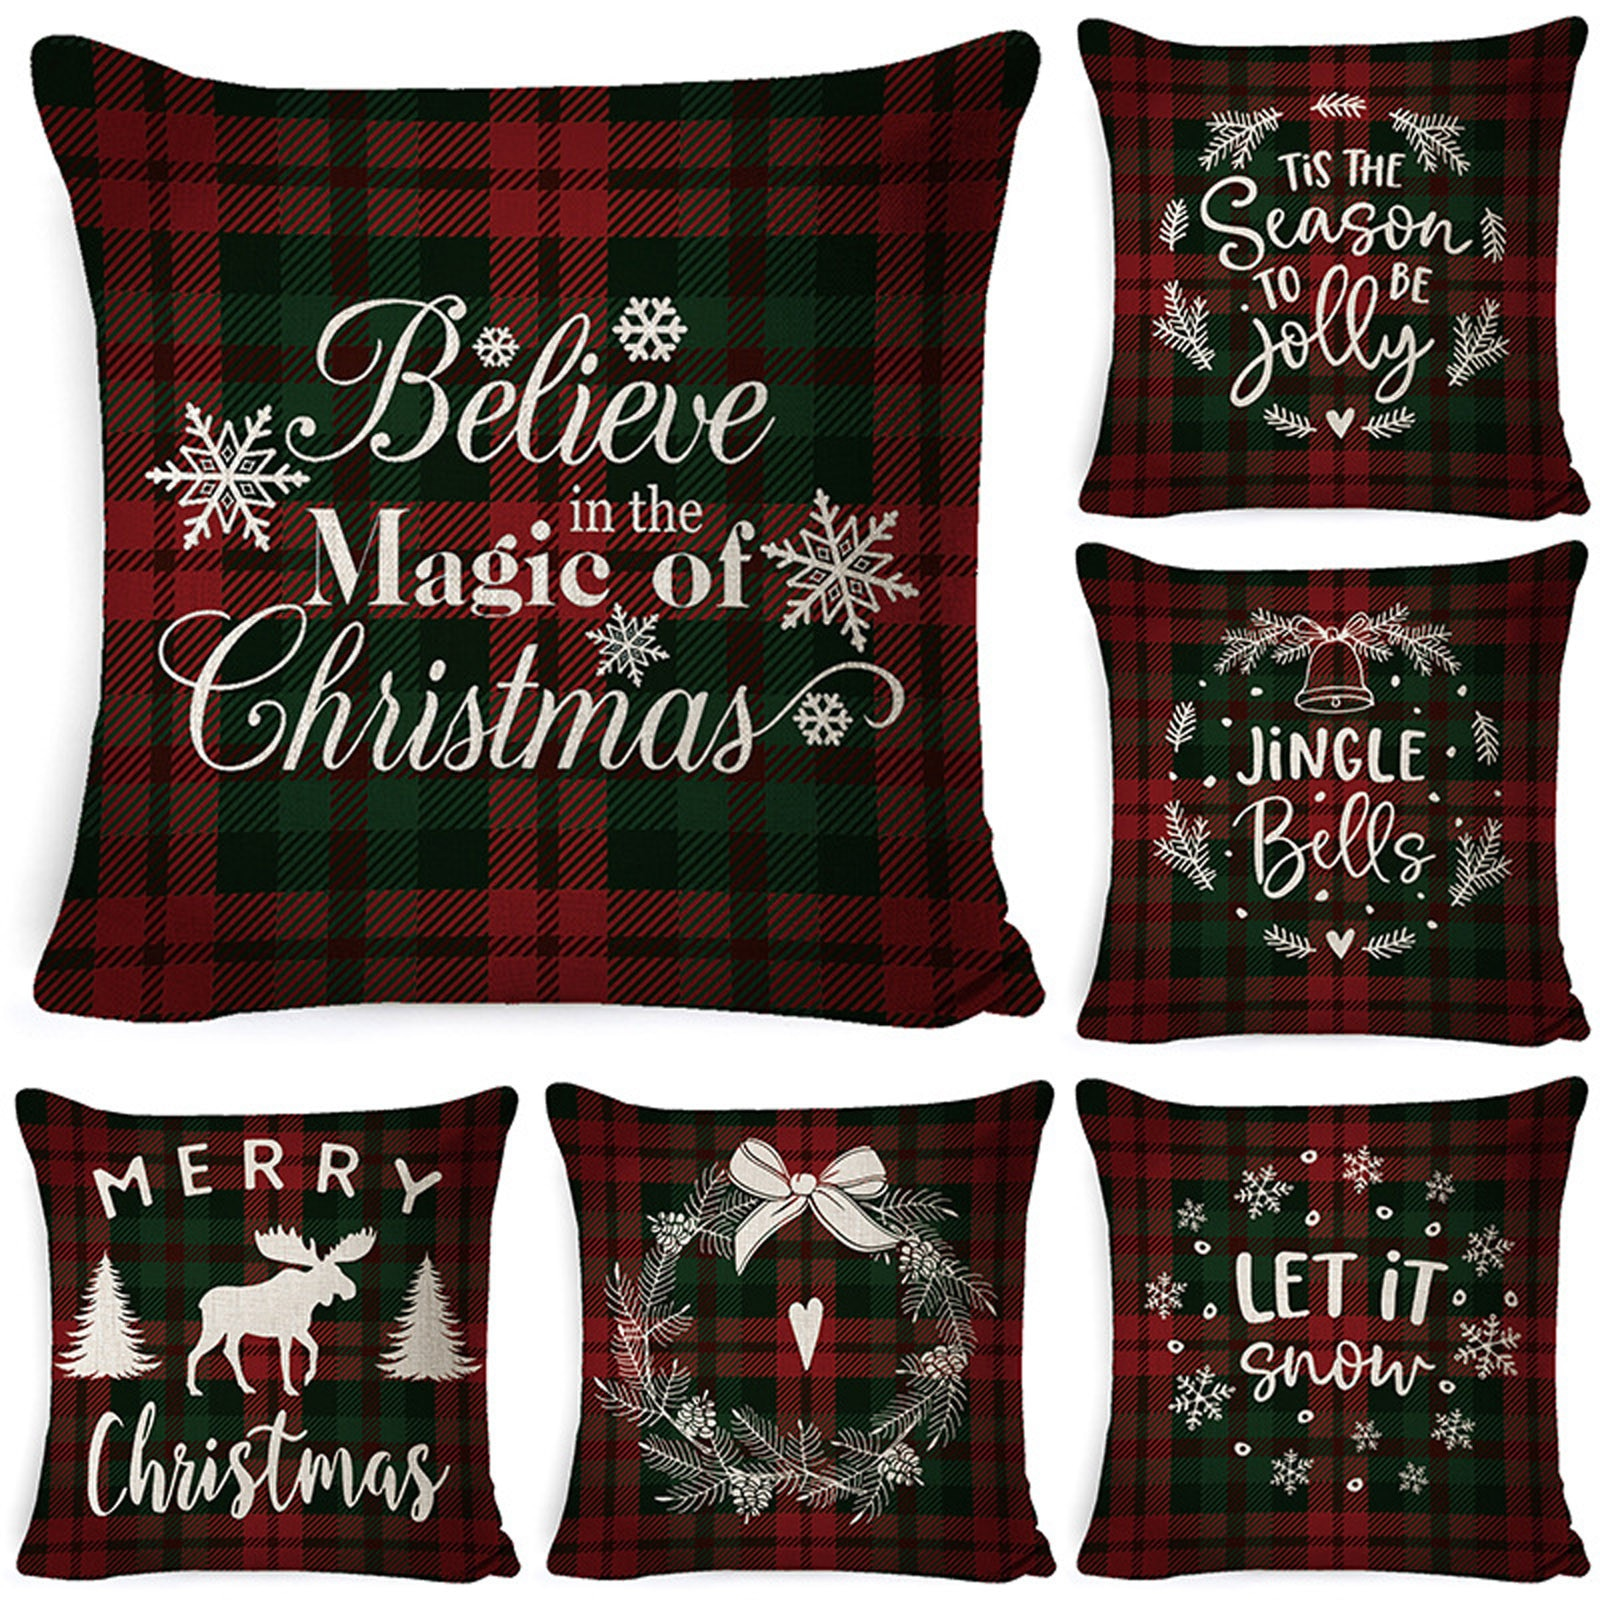 Christmas Plaid Pattern Cushion Covers Decorative Pillows bed Cotton Line nFlower Printed Throw Pill